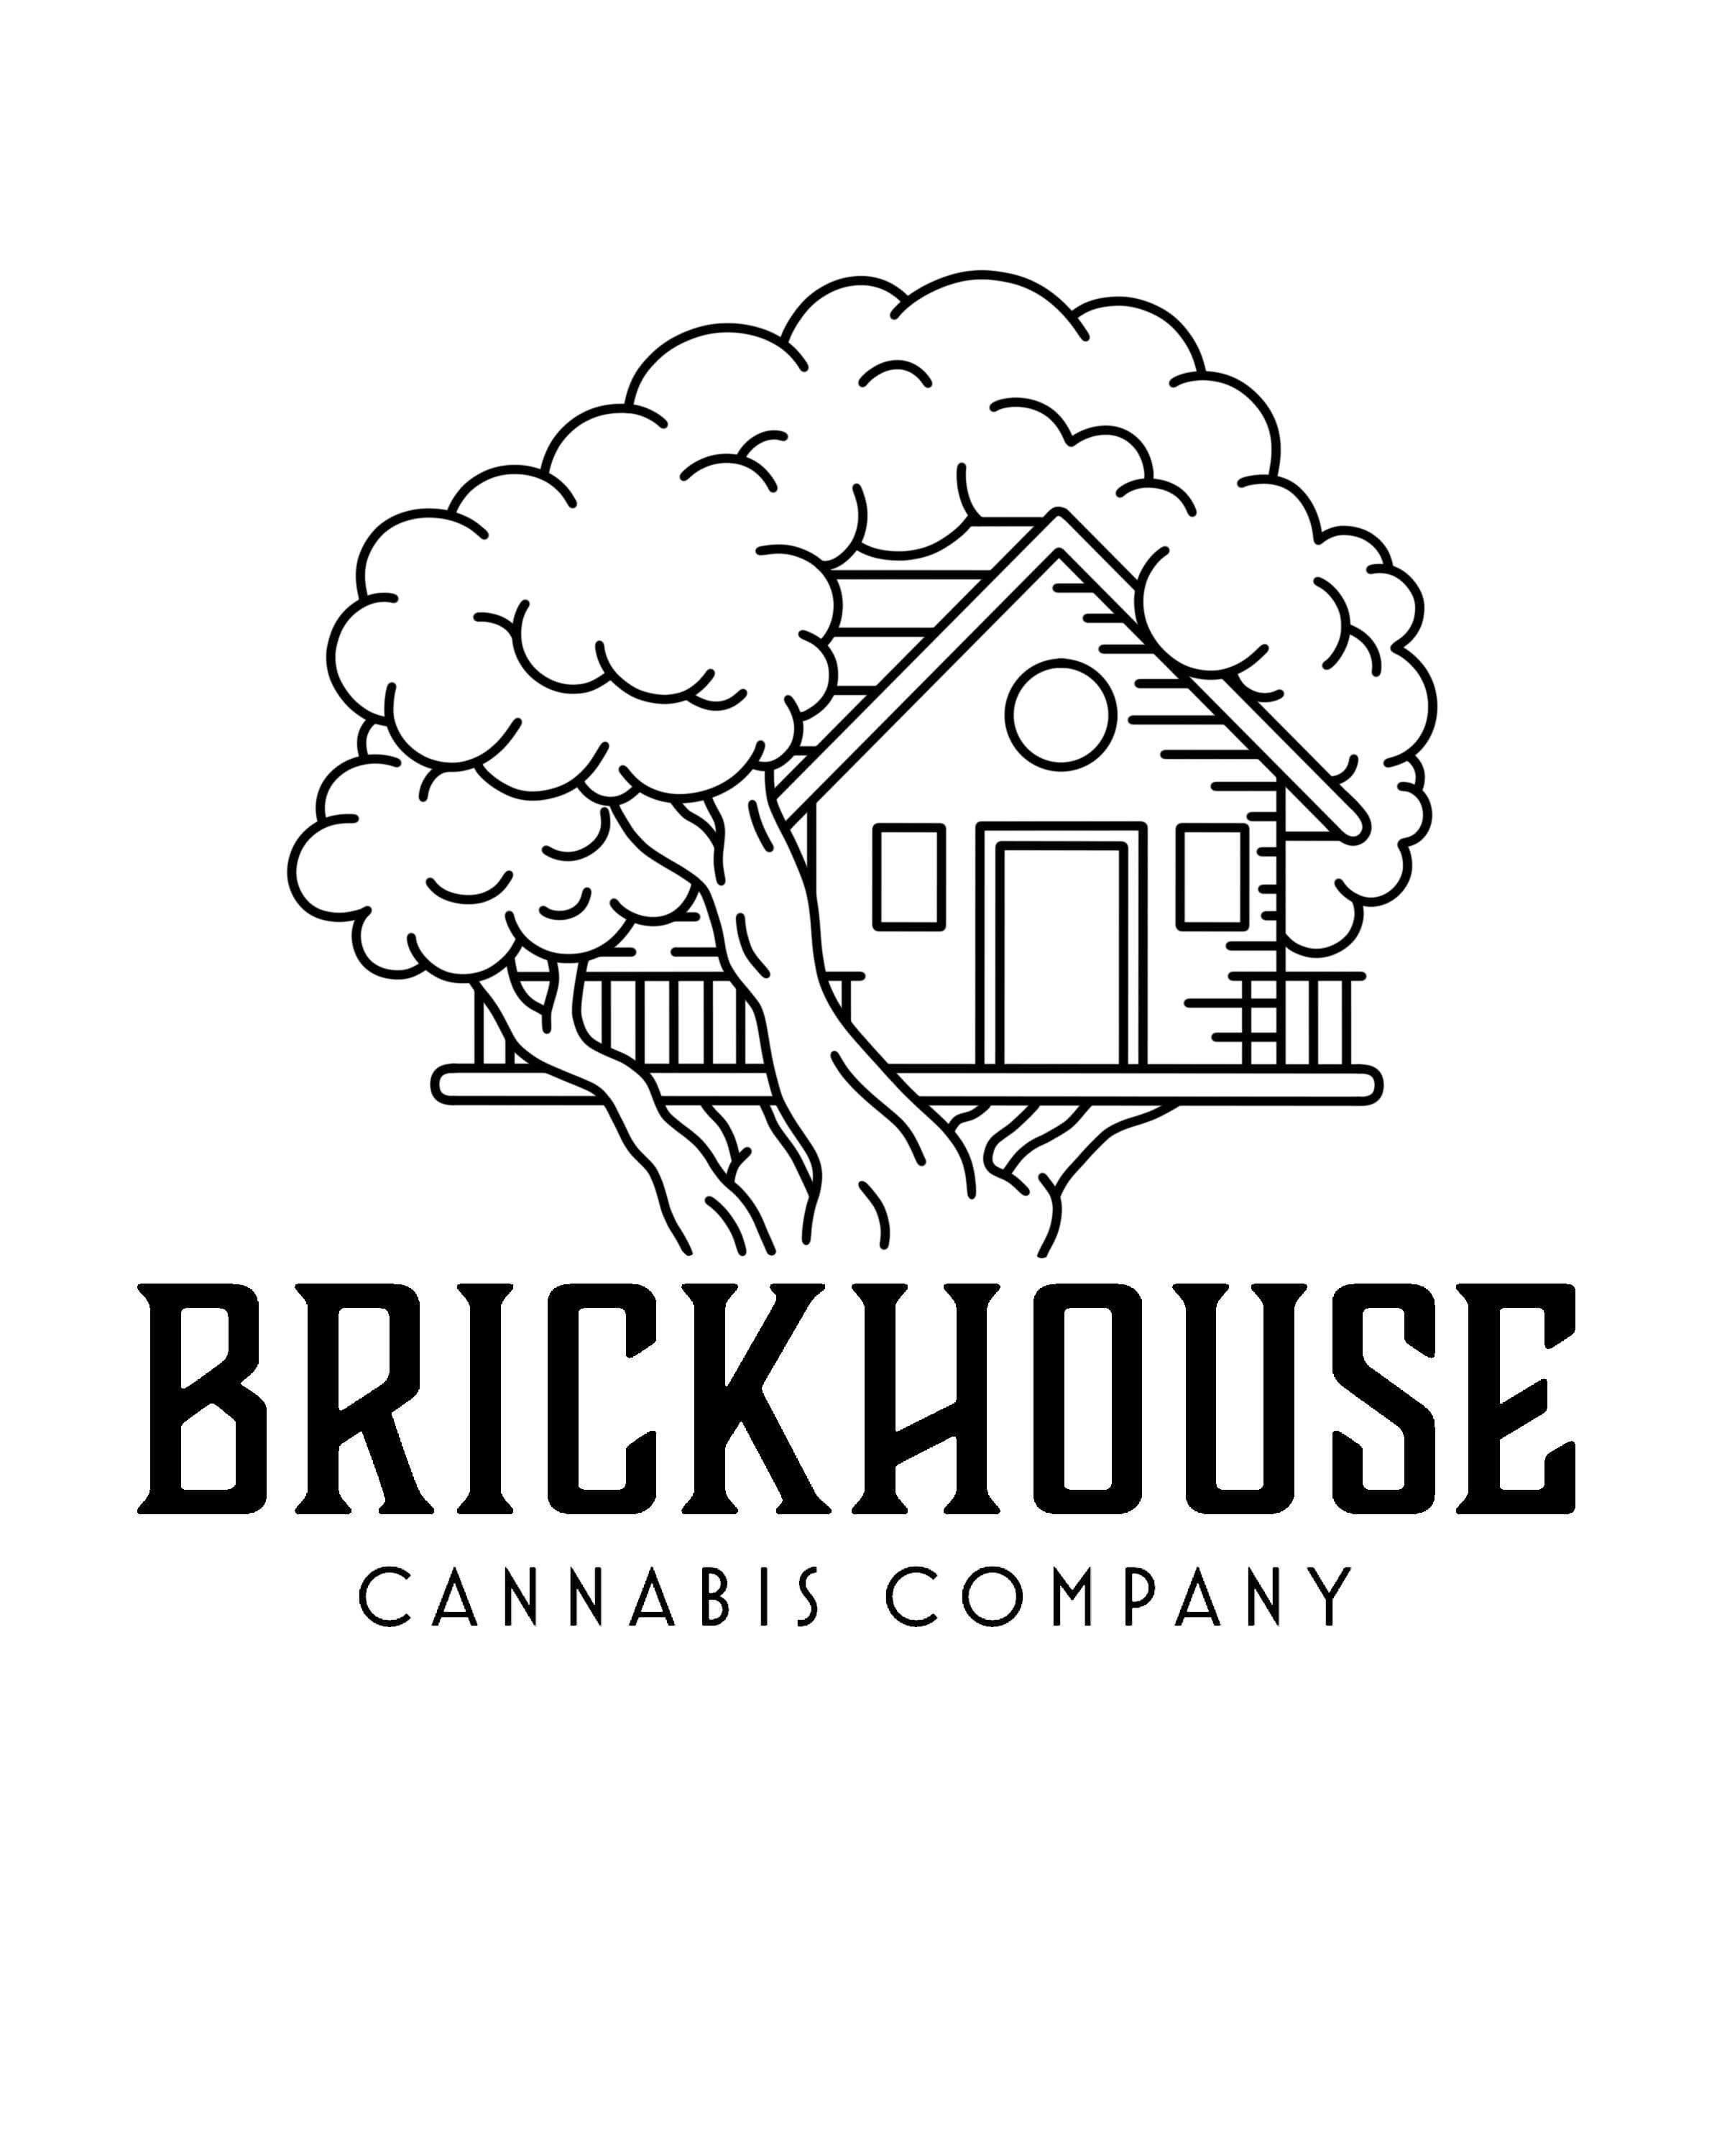 Brickhouse Cannasseurs - Medical Marijuana Doctors - Cannabizme.com